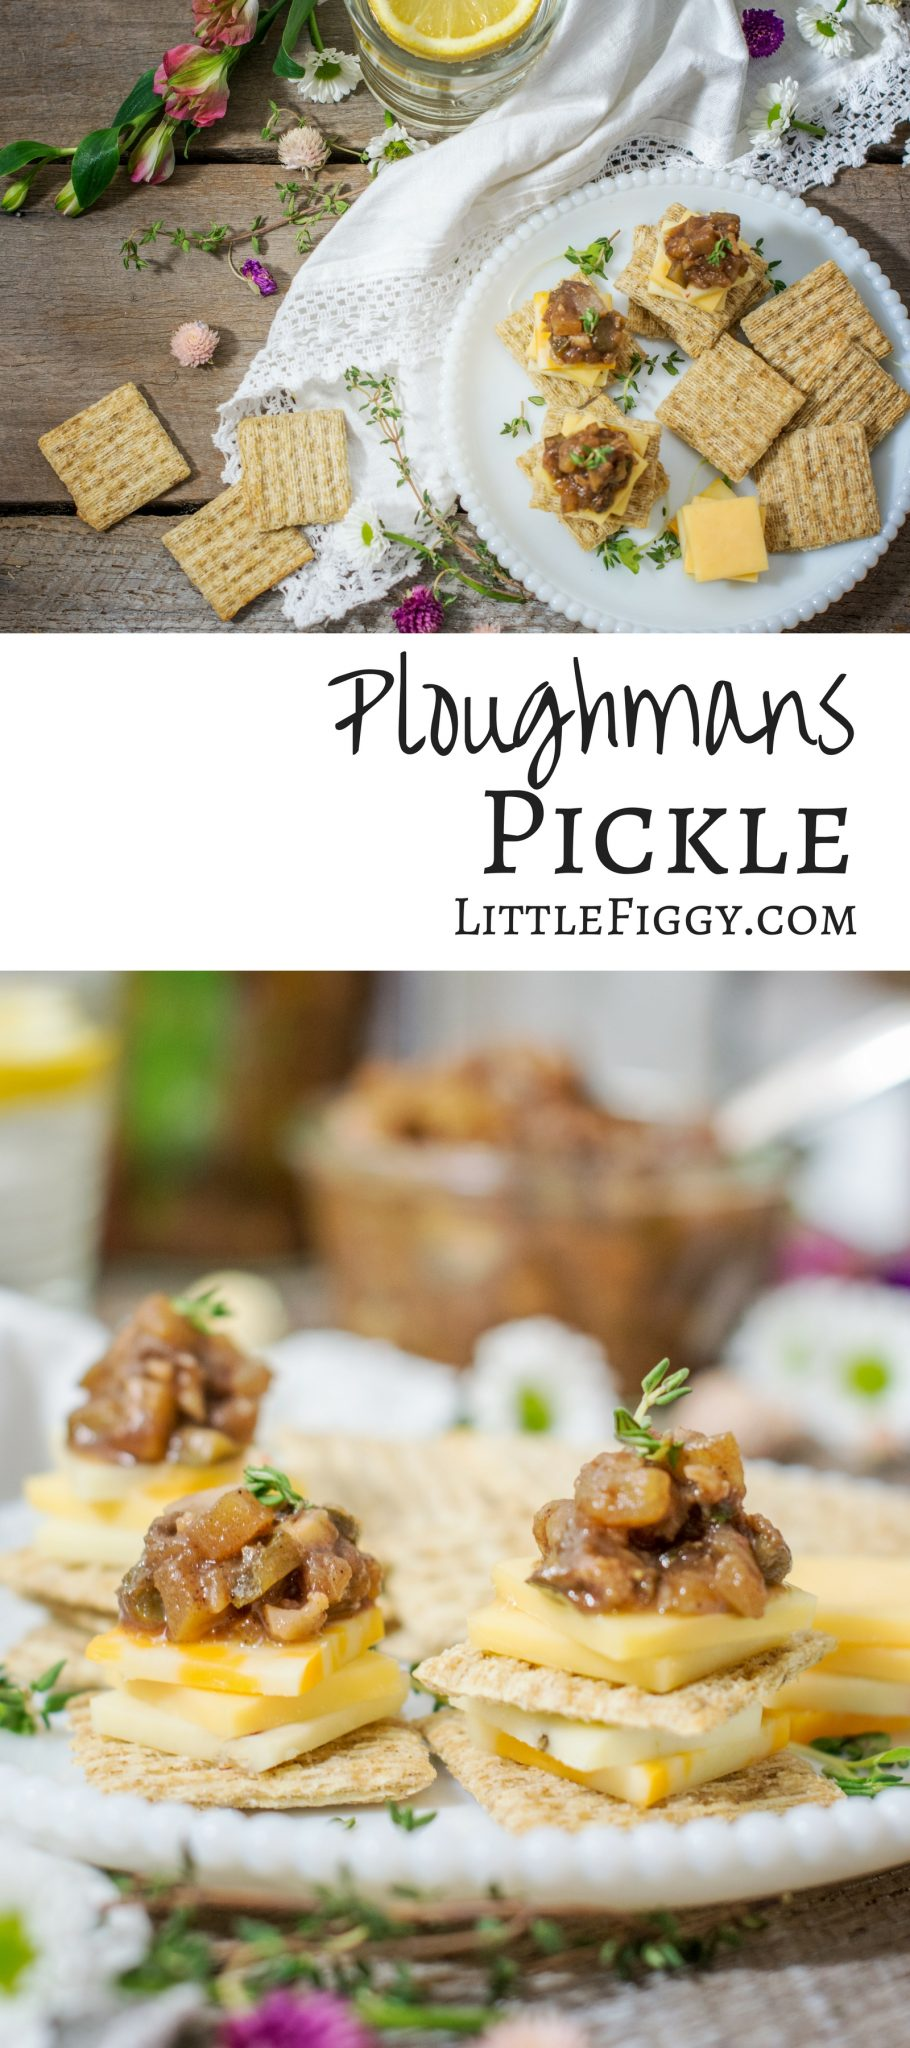 Enjoy making your own Ploughmans Pickle, Britains favorite pickle! Serve it on @TRISCUIT Crackers with a nice sharp cheese! Get the recipe at Little Figgy Food. #ad #TriscuitCharcuterie